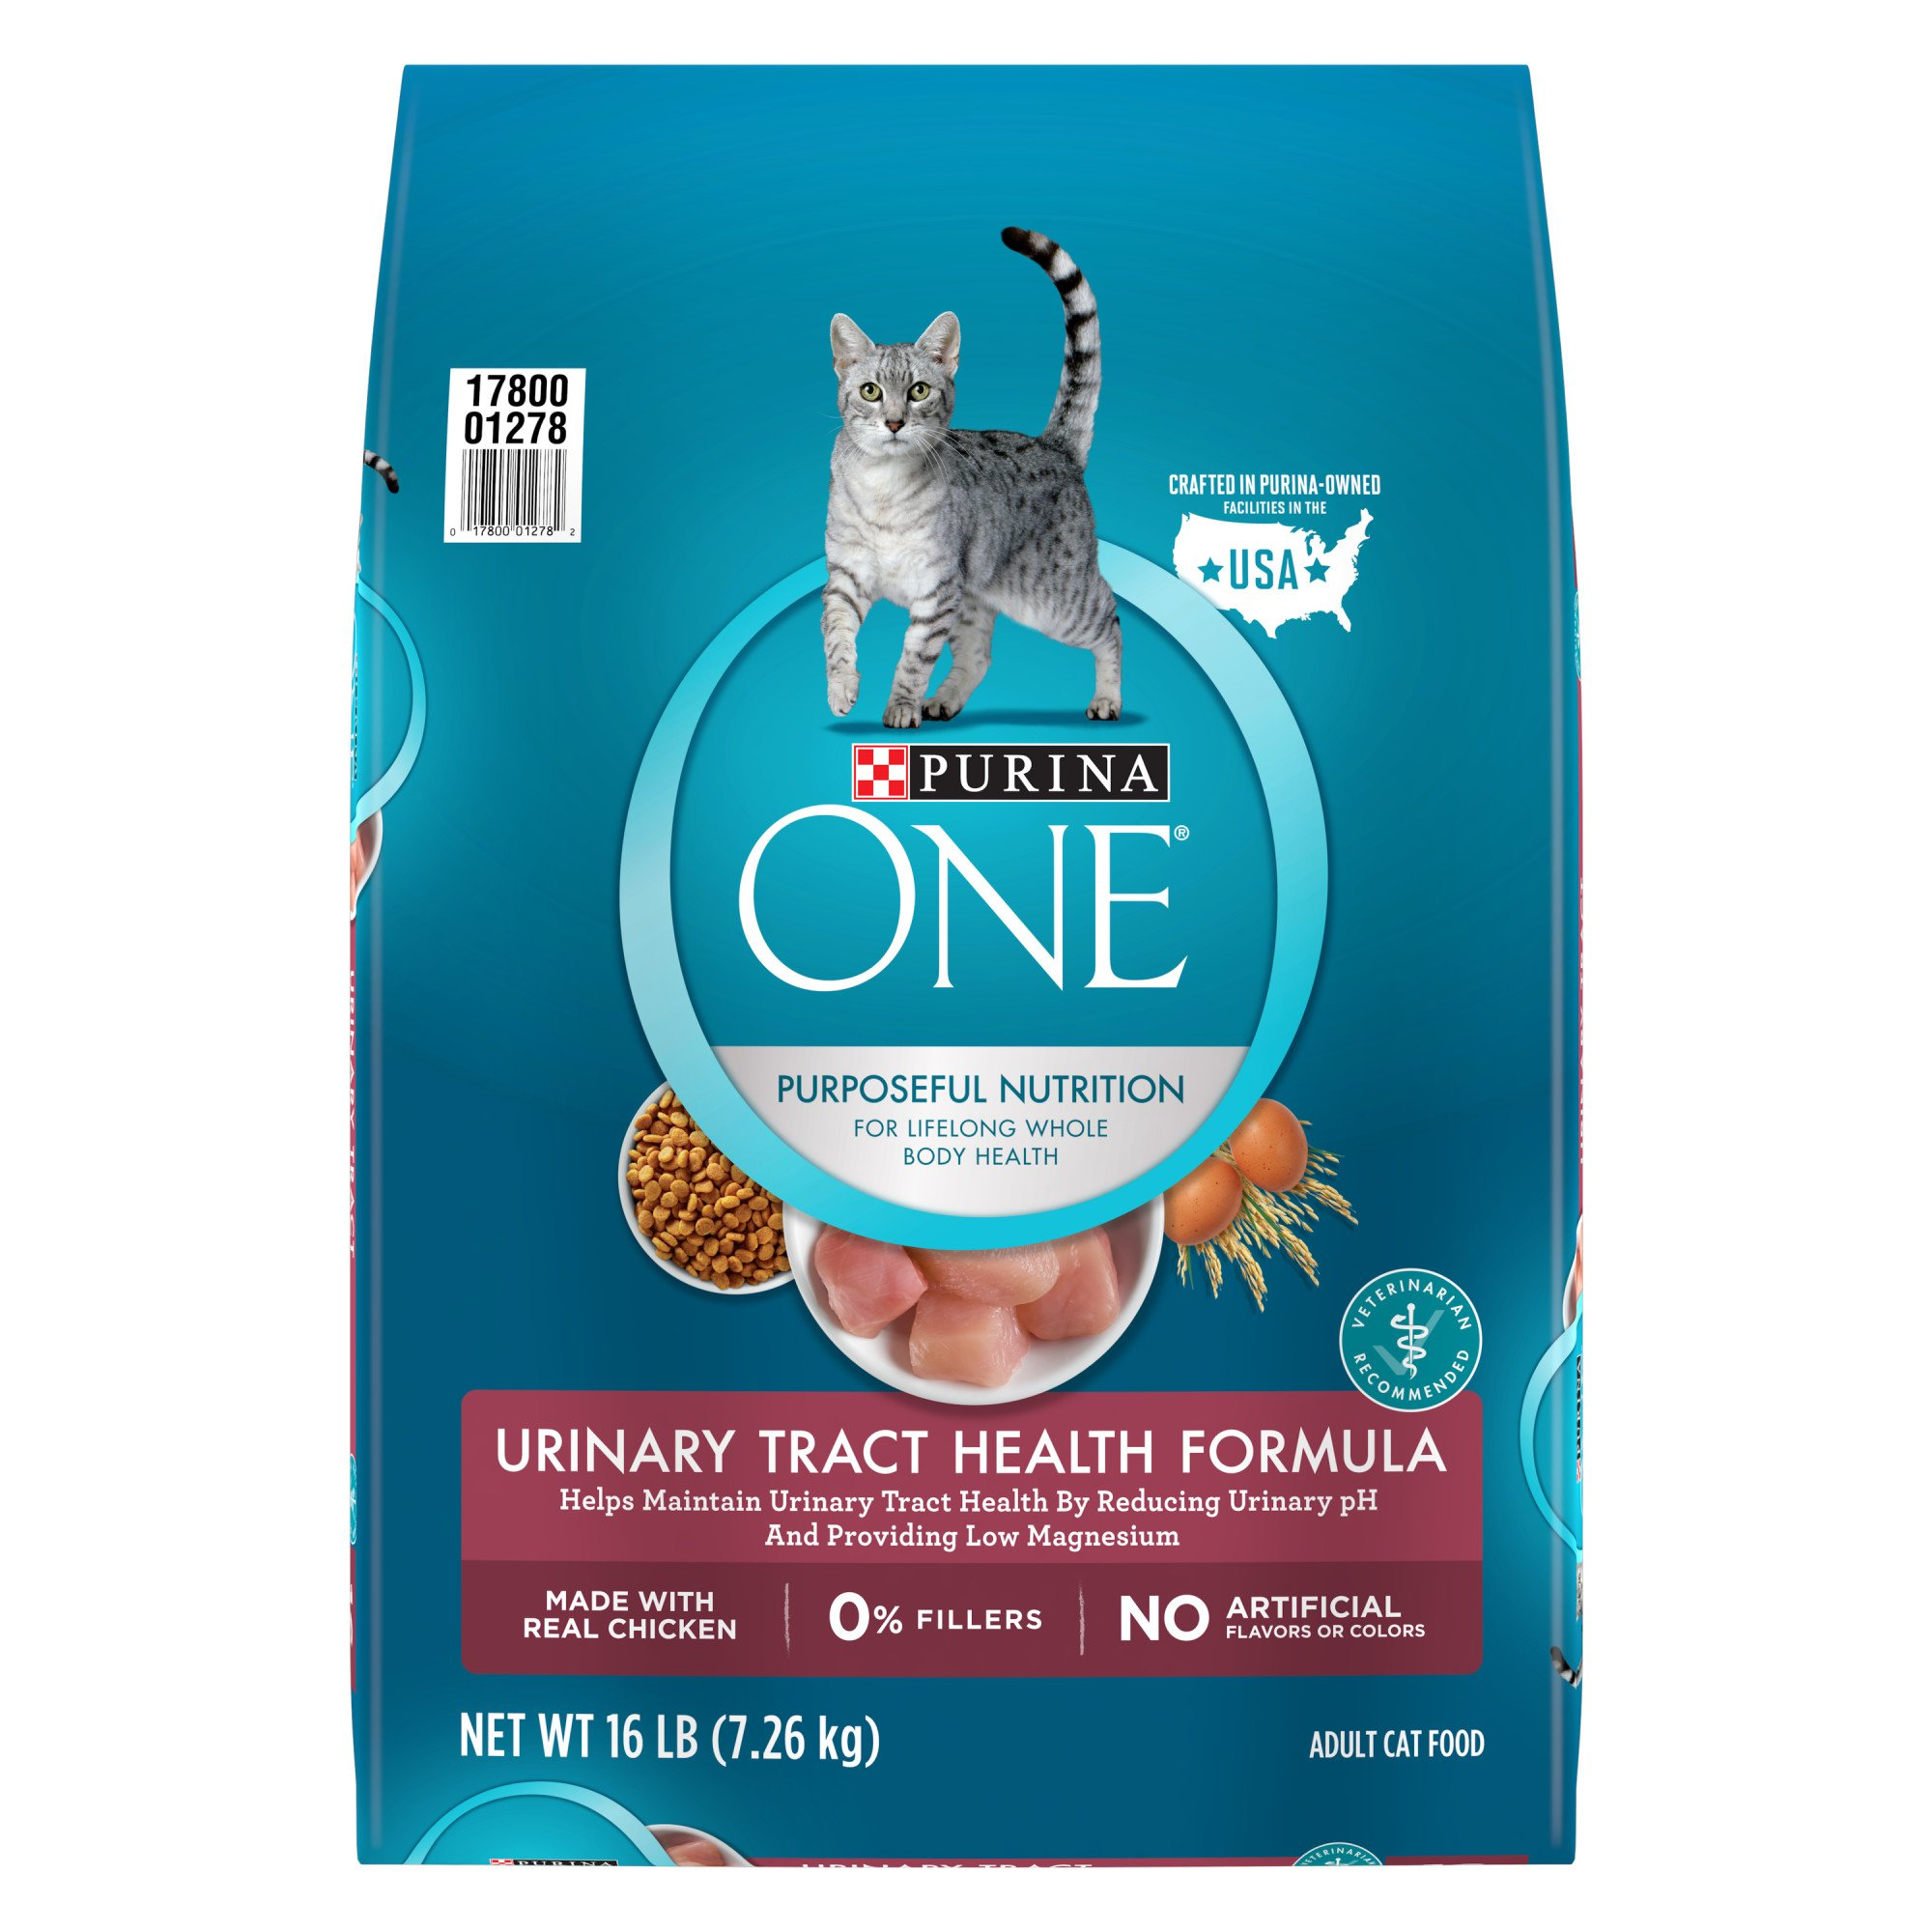 Purina ONE Special Care Urinary Tract Health Formula Cat Food | Petco